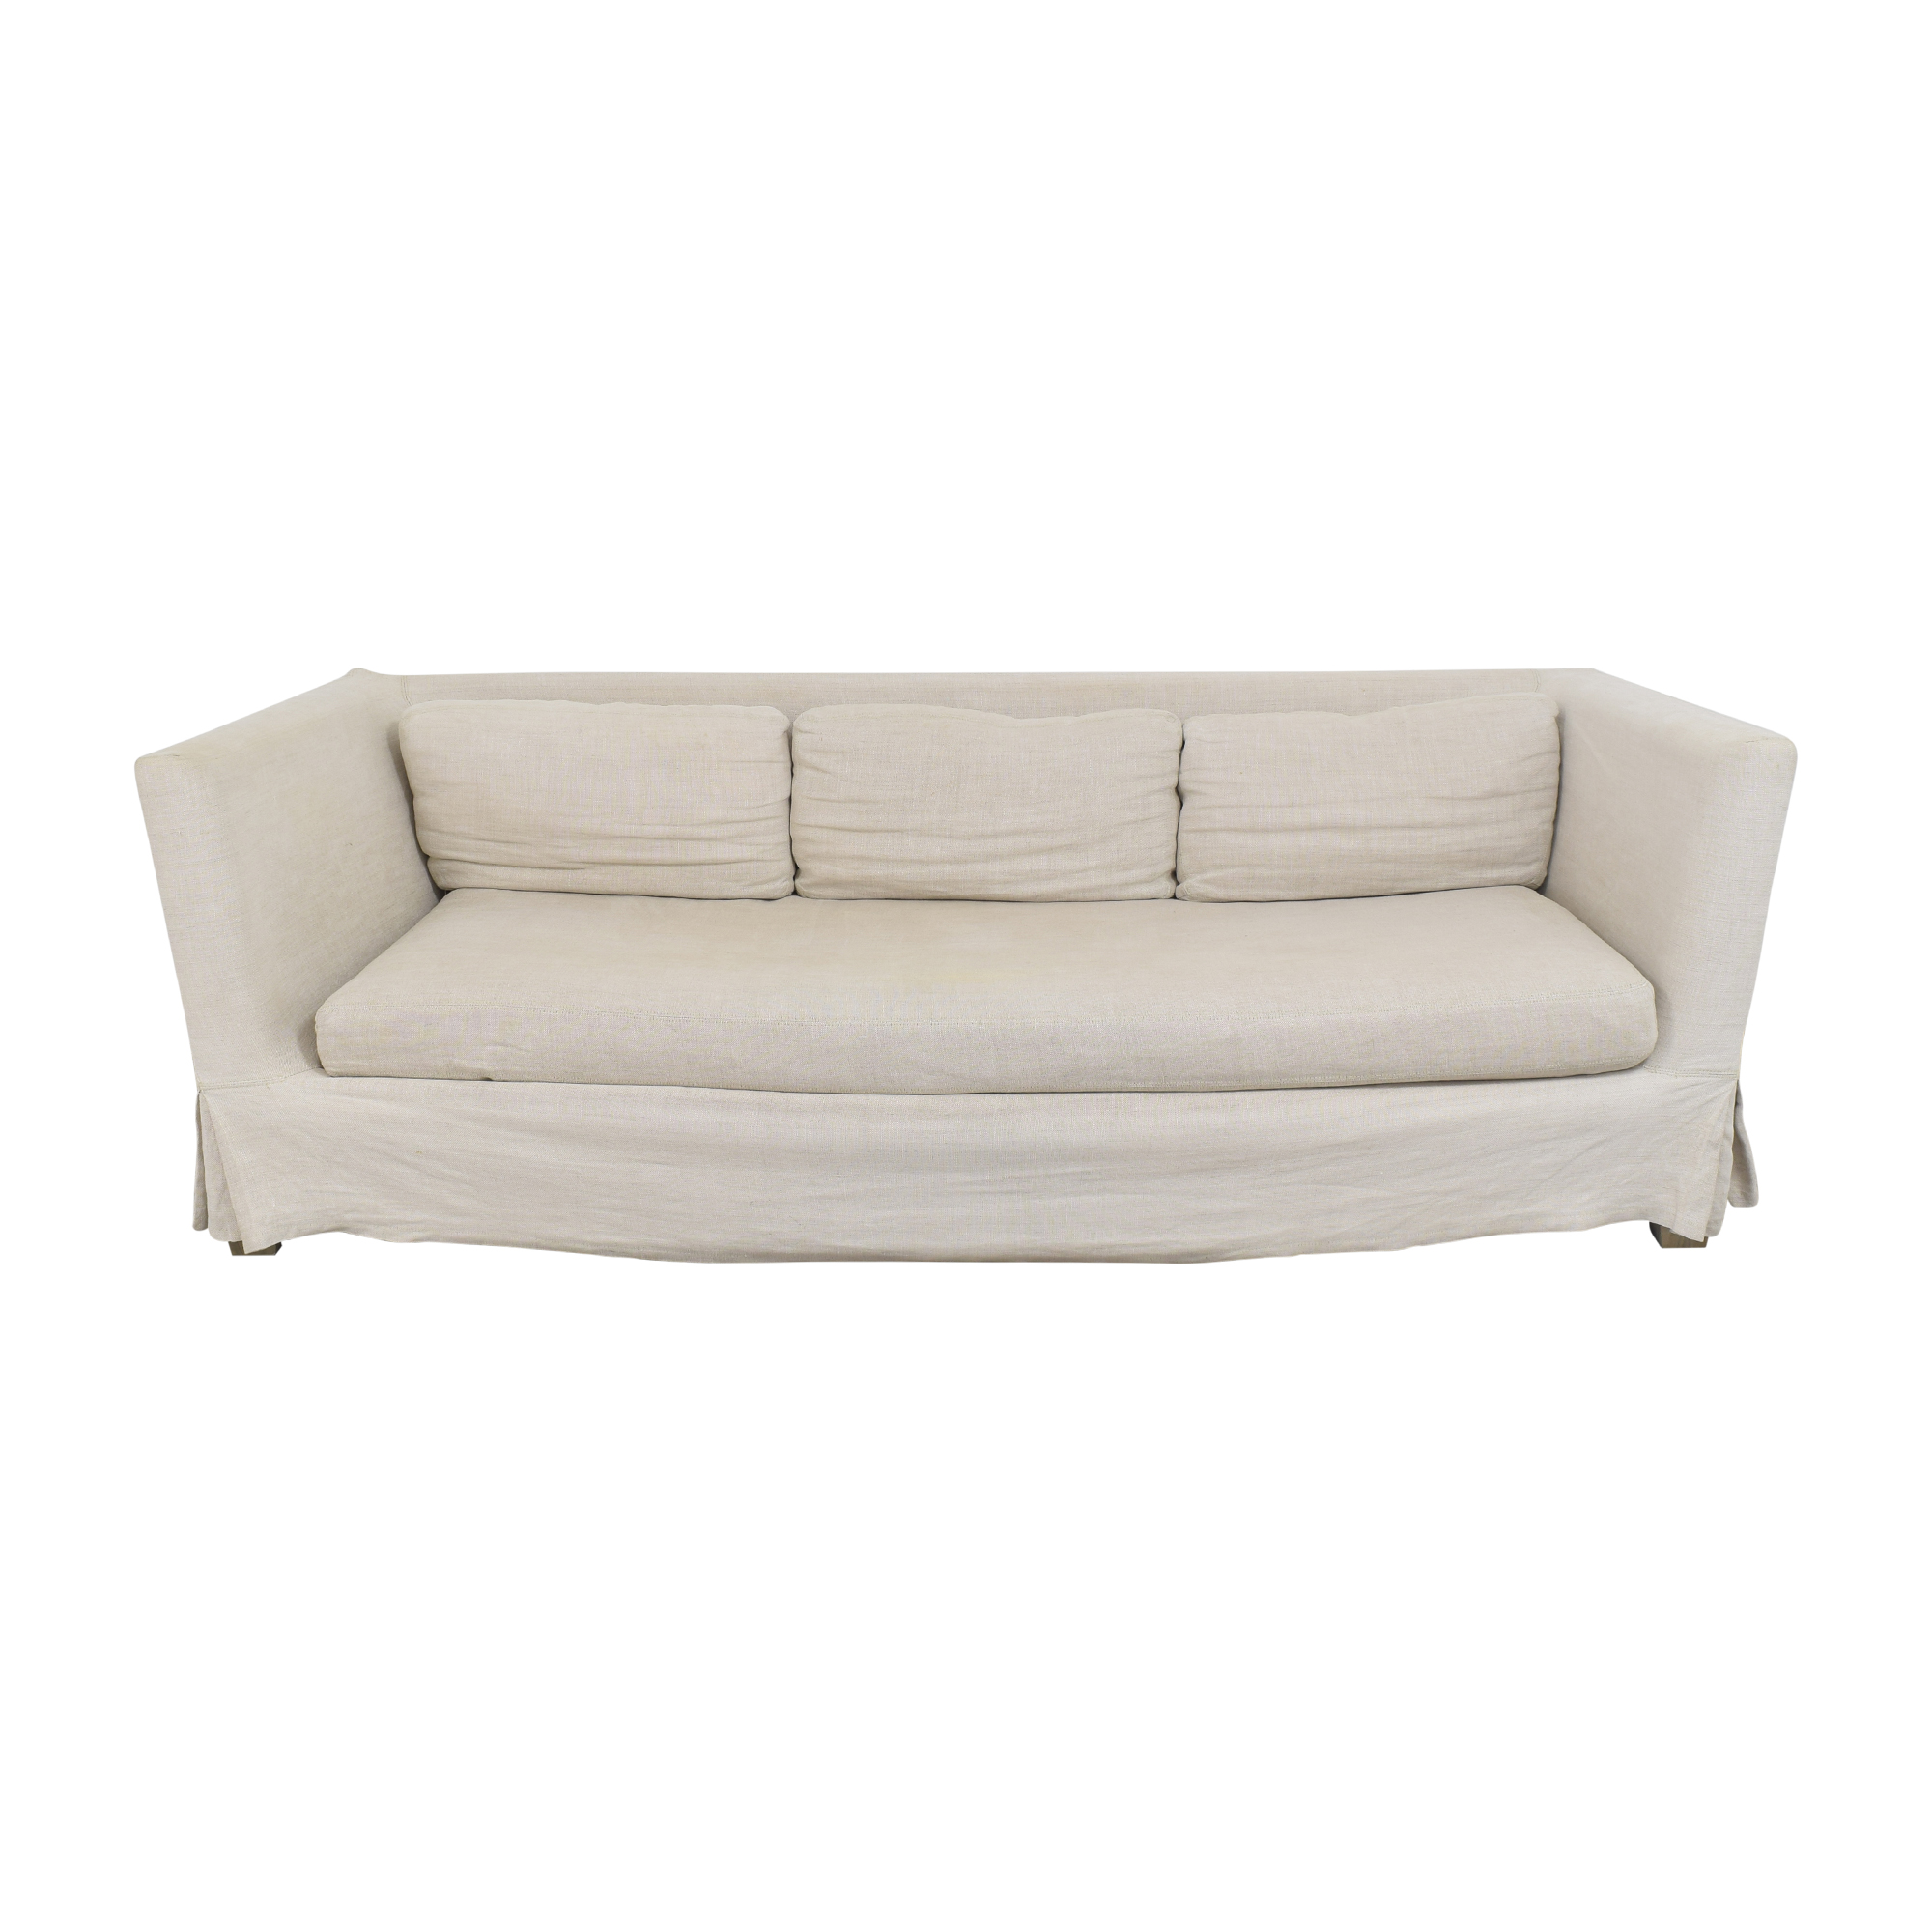 shop Restoration Hardware Belgian Shelter Arm Slipcovered Sofa Restoration Hardware